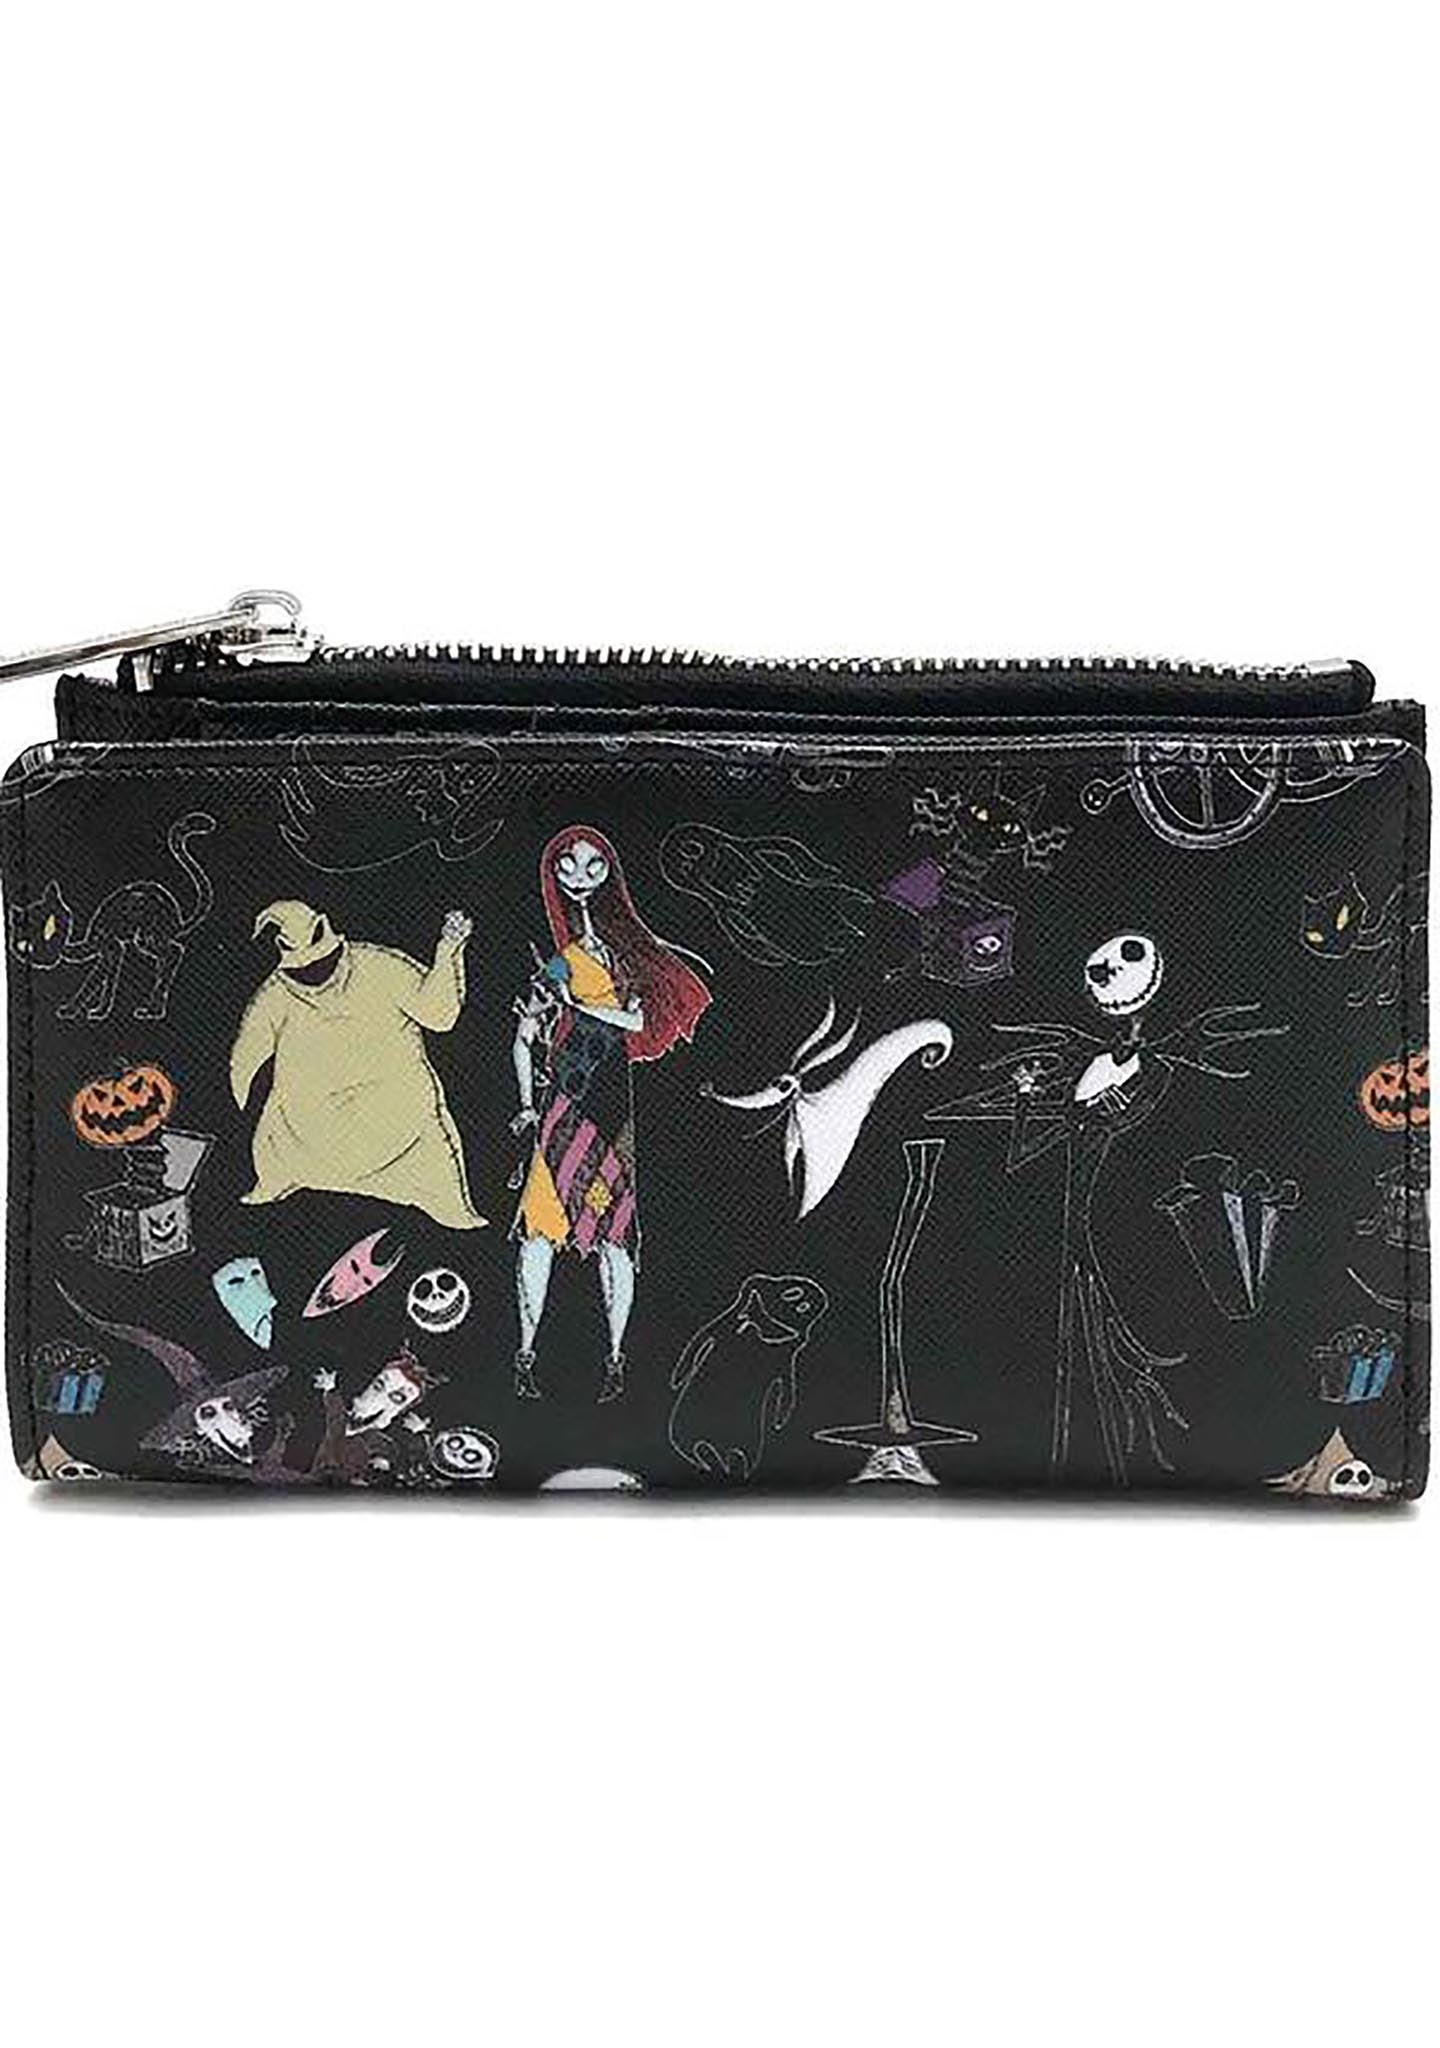 LOUNGEFLY | Shop Loungefly X Nightmare Before Christmas Character ...